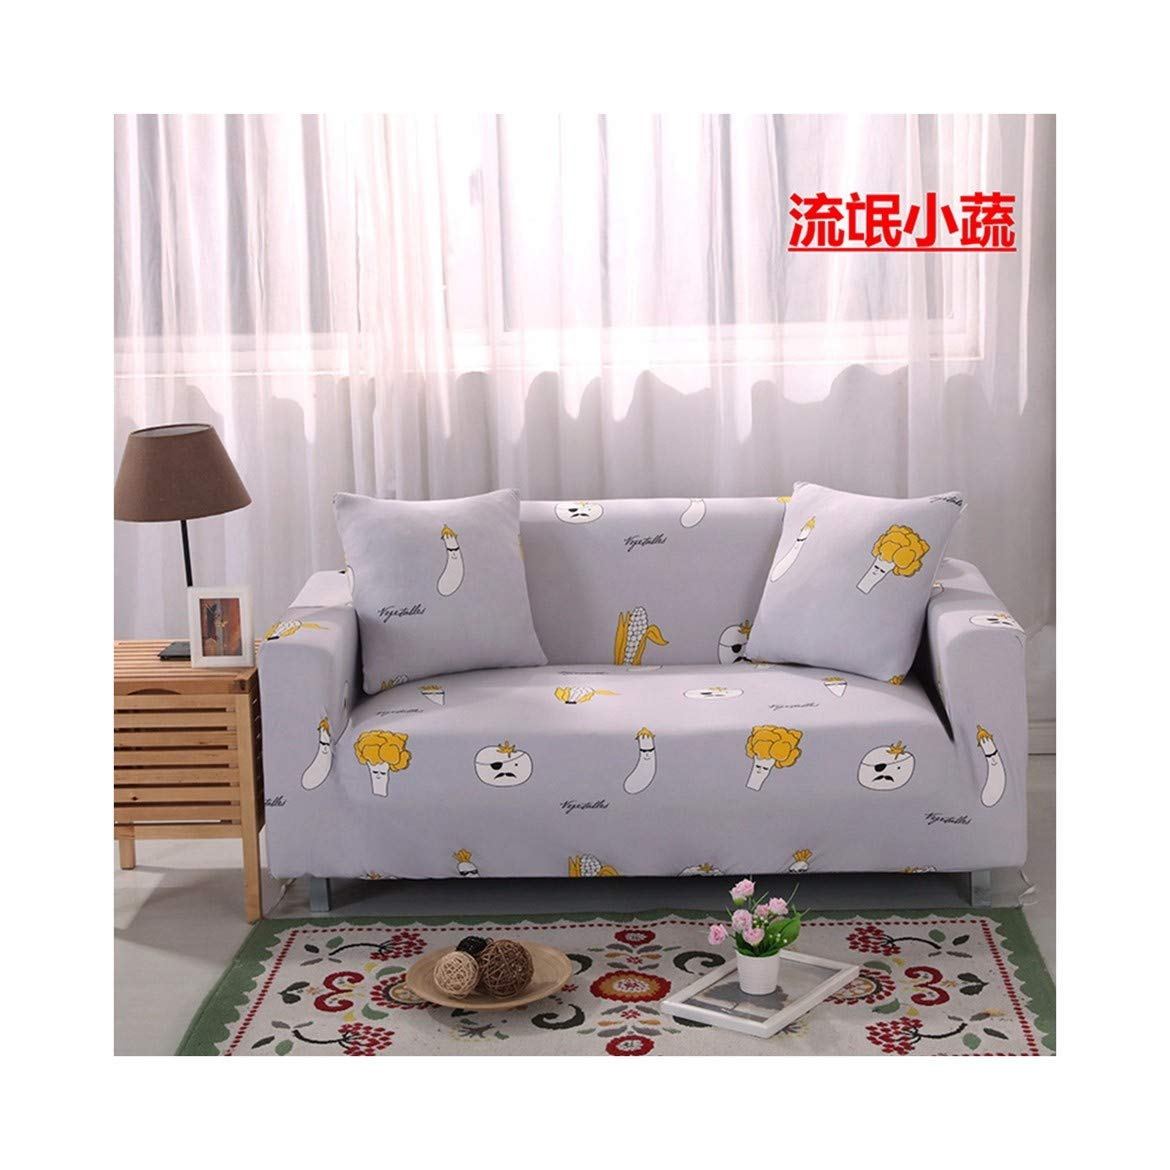 4seat VGUYFUYH Vegetable Pattern Four Seasons Universal Sofa Cover Polyester Full Package Elasticity Home Universal Sofa Cover Simple Fashion One Piece Durable Dust-Proof Pet Dog Predective Cover,4Seat